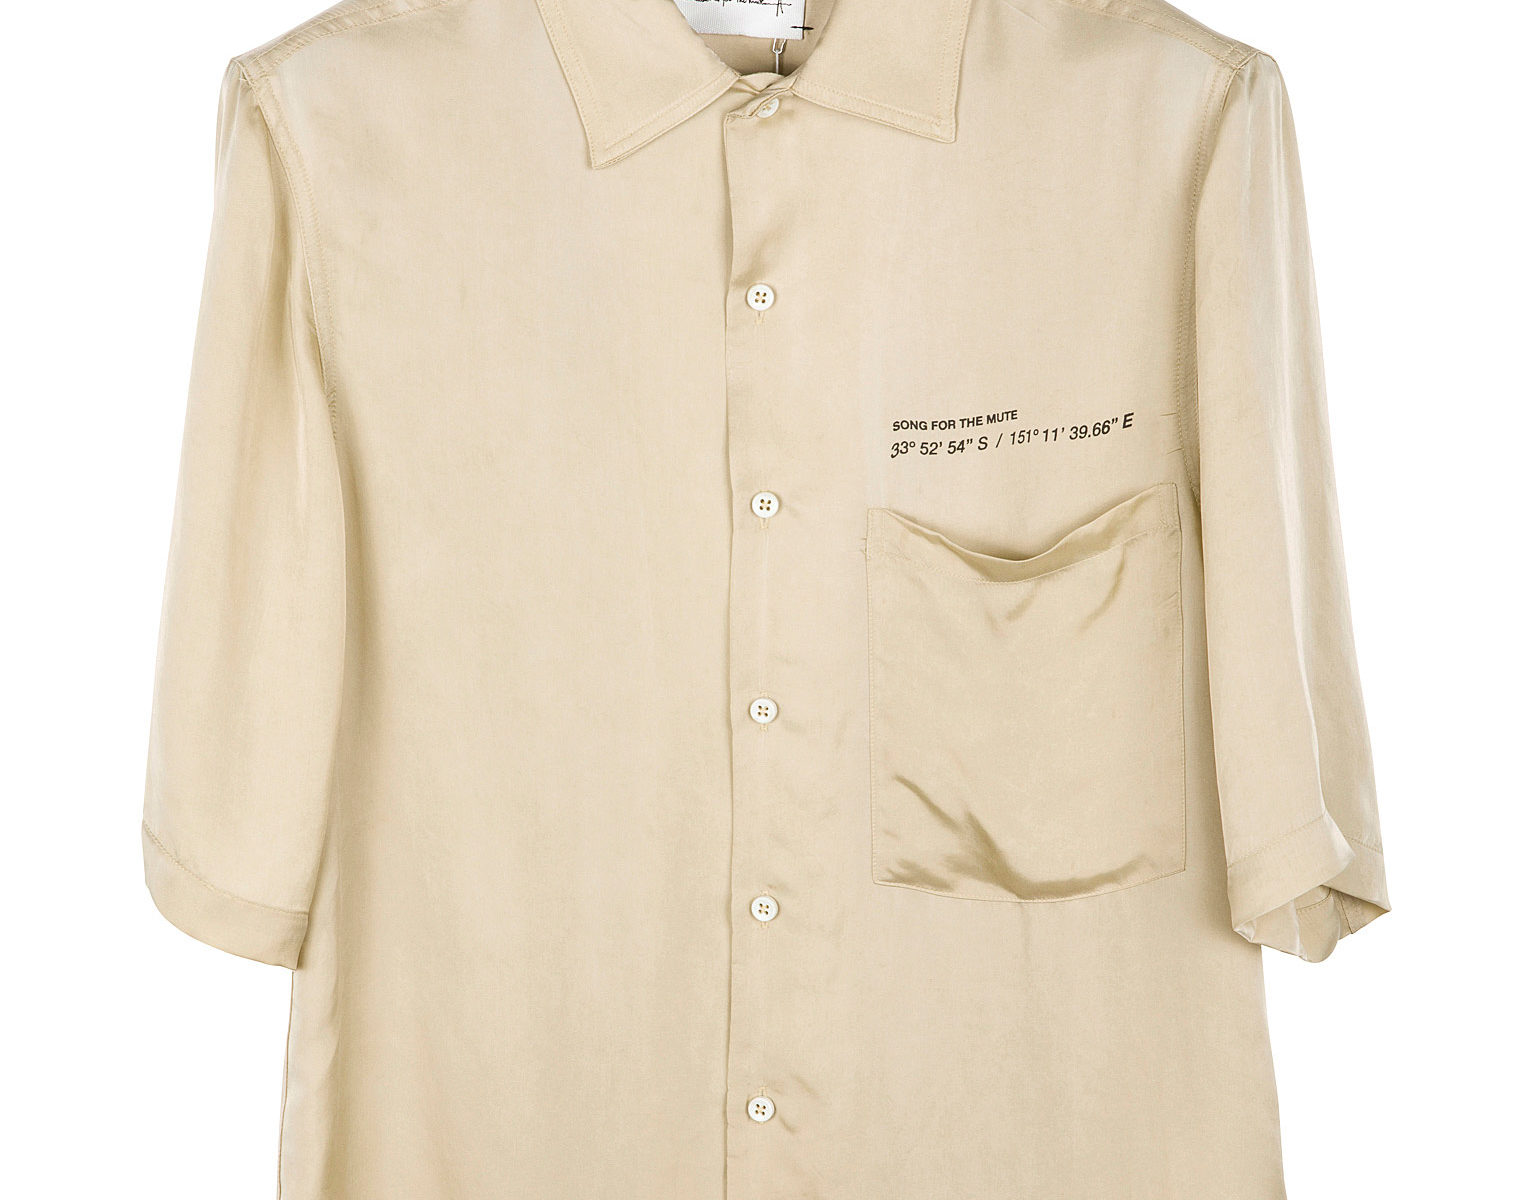 SONG FOR THE MUTE Coordinates Oversized Shirt 1